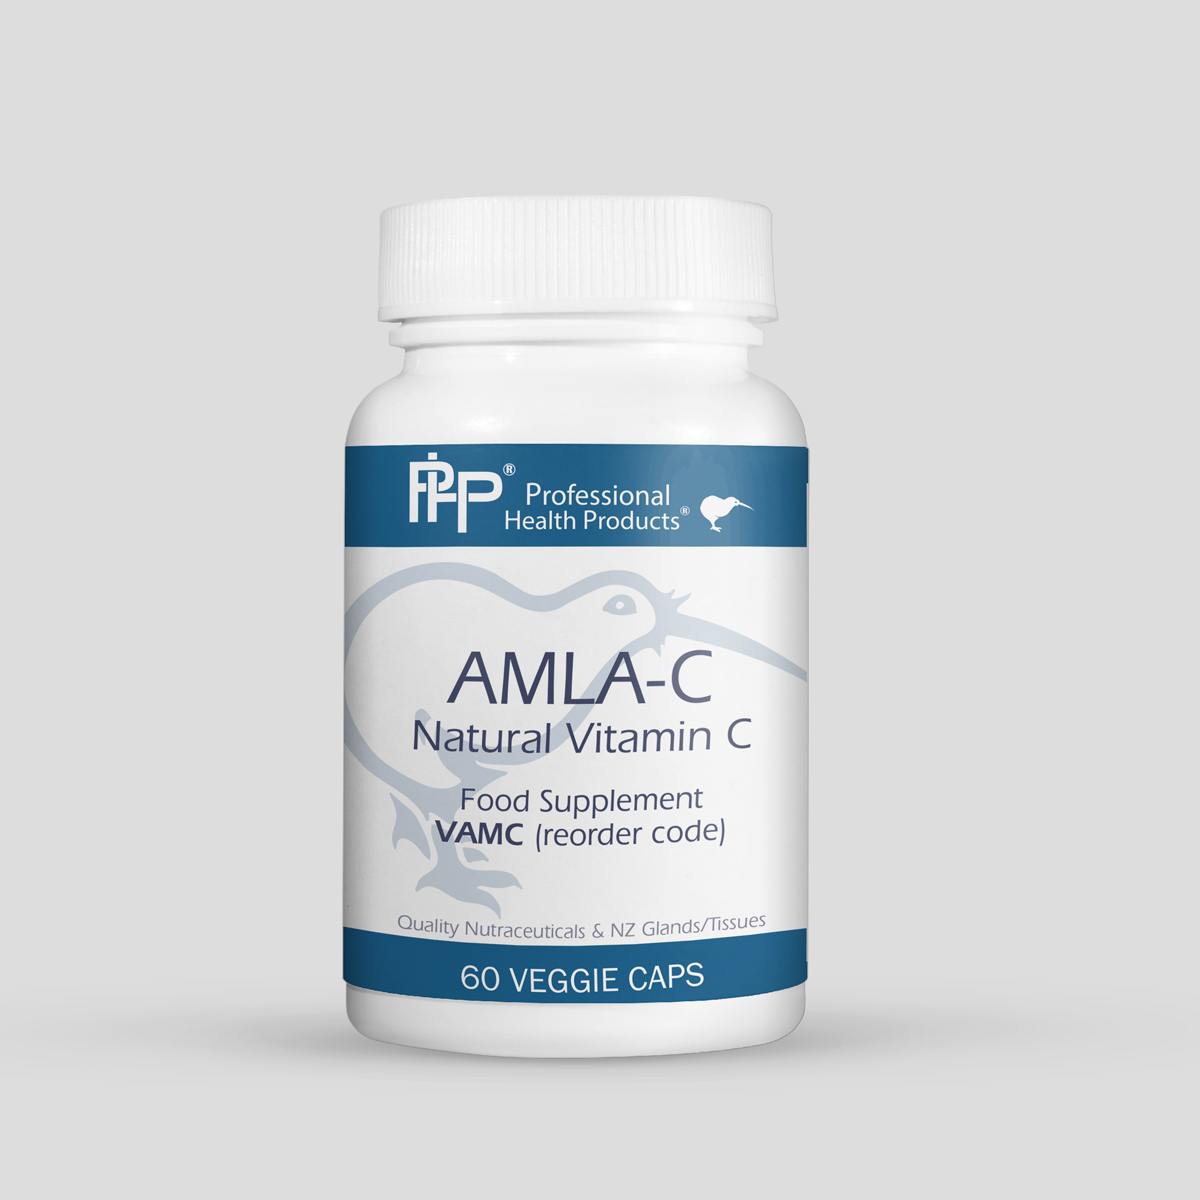 AMLA-C (Natural Vitamin C)